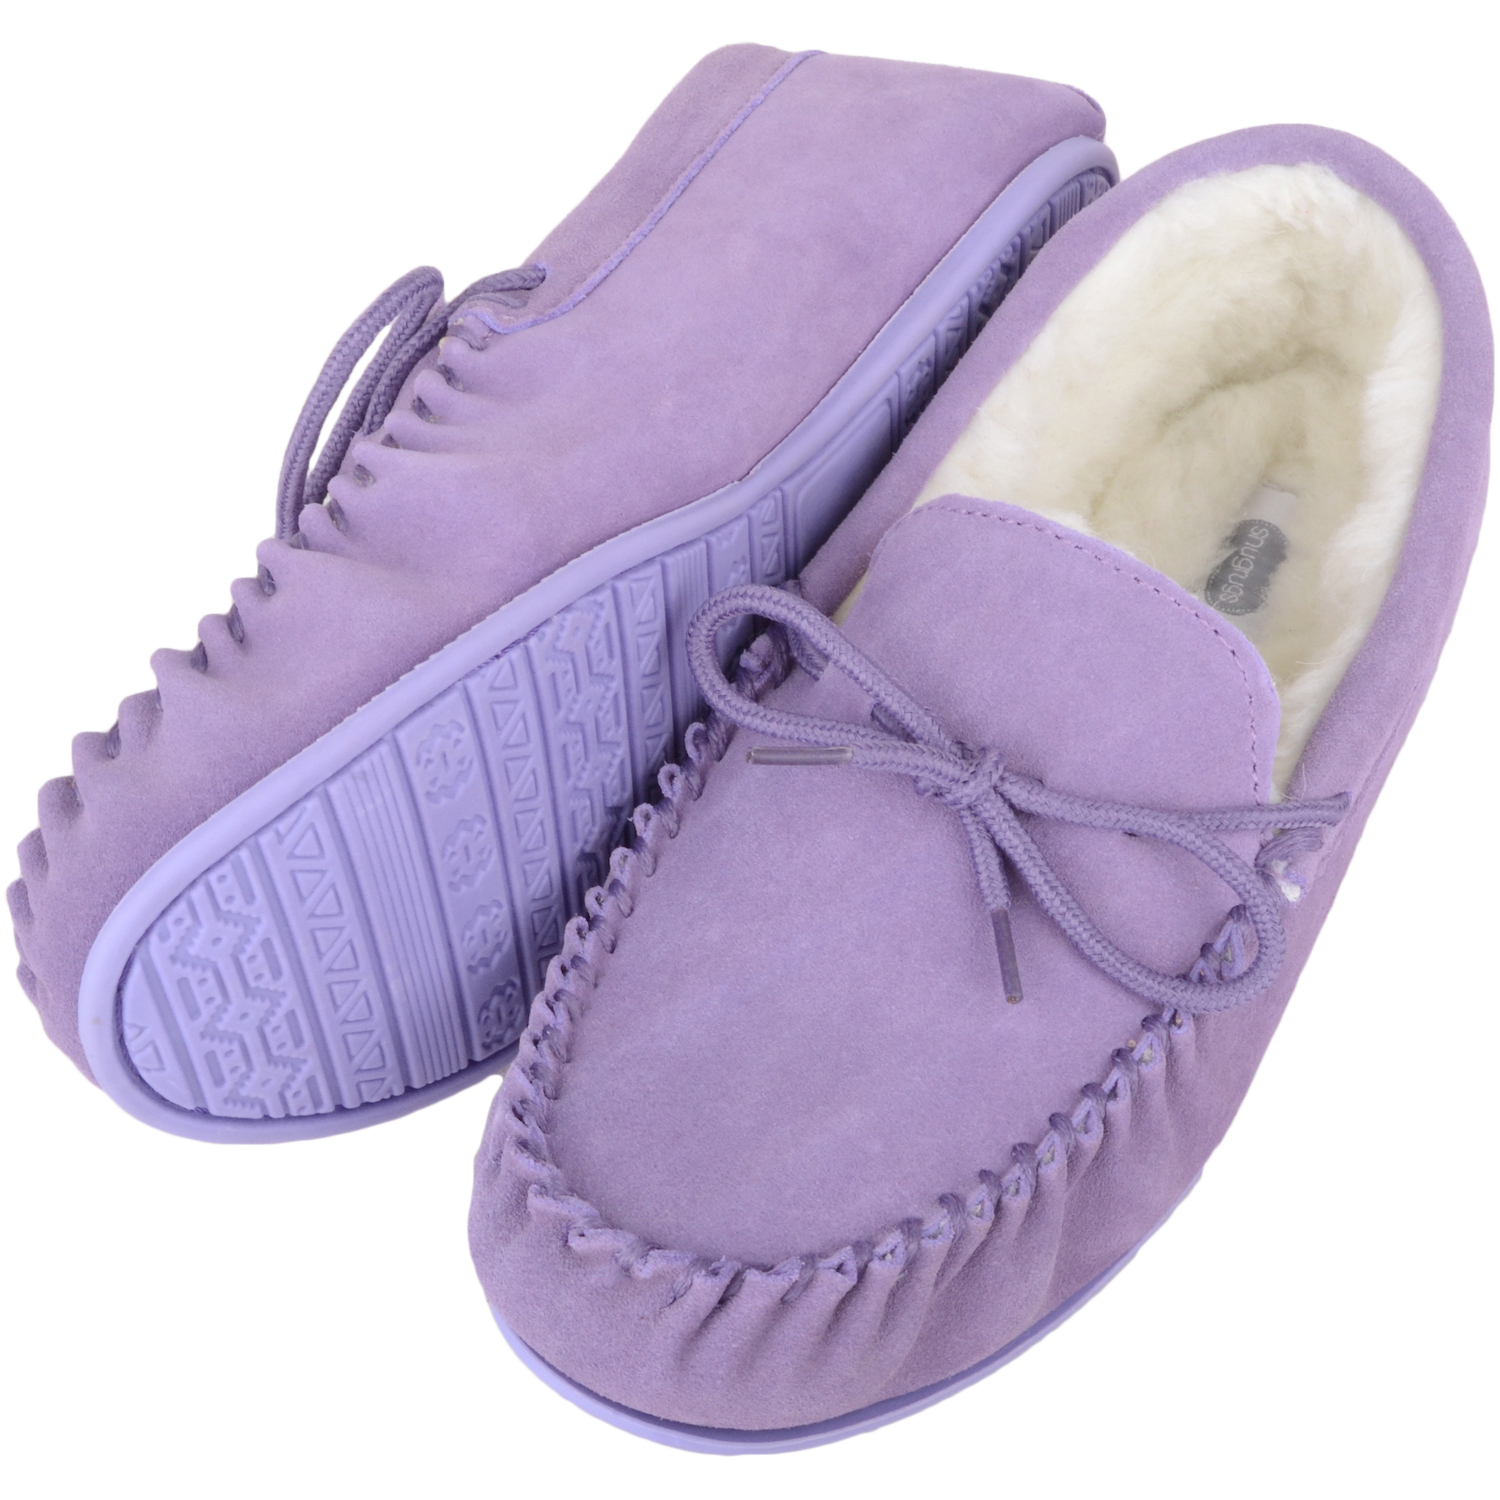 Snugrugs Wool Lined Suede Moccasin with Rubber Sole - Lilac